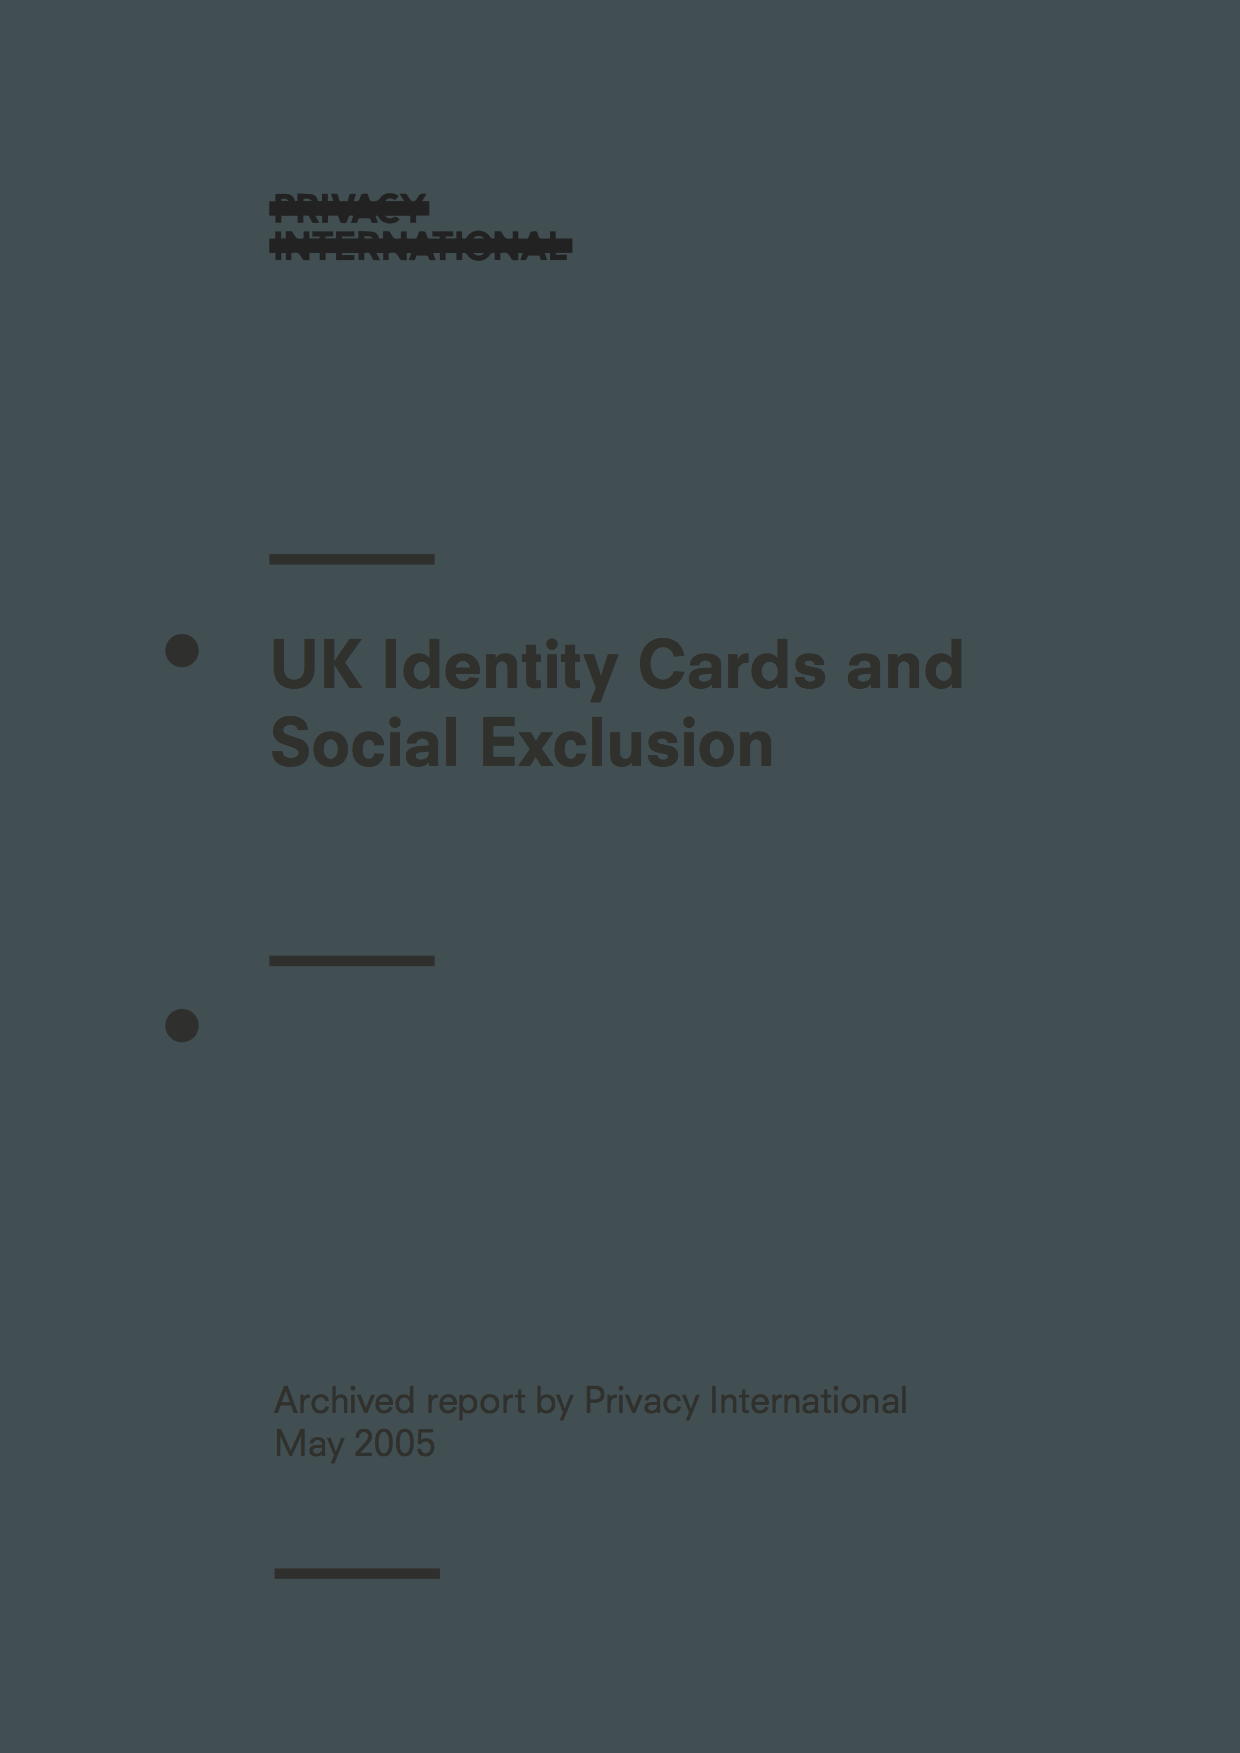 UK Identity Cards and Social Exclusion